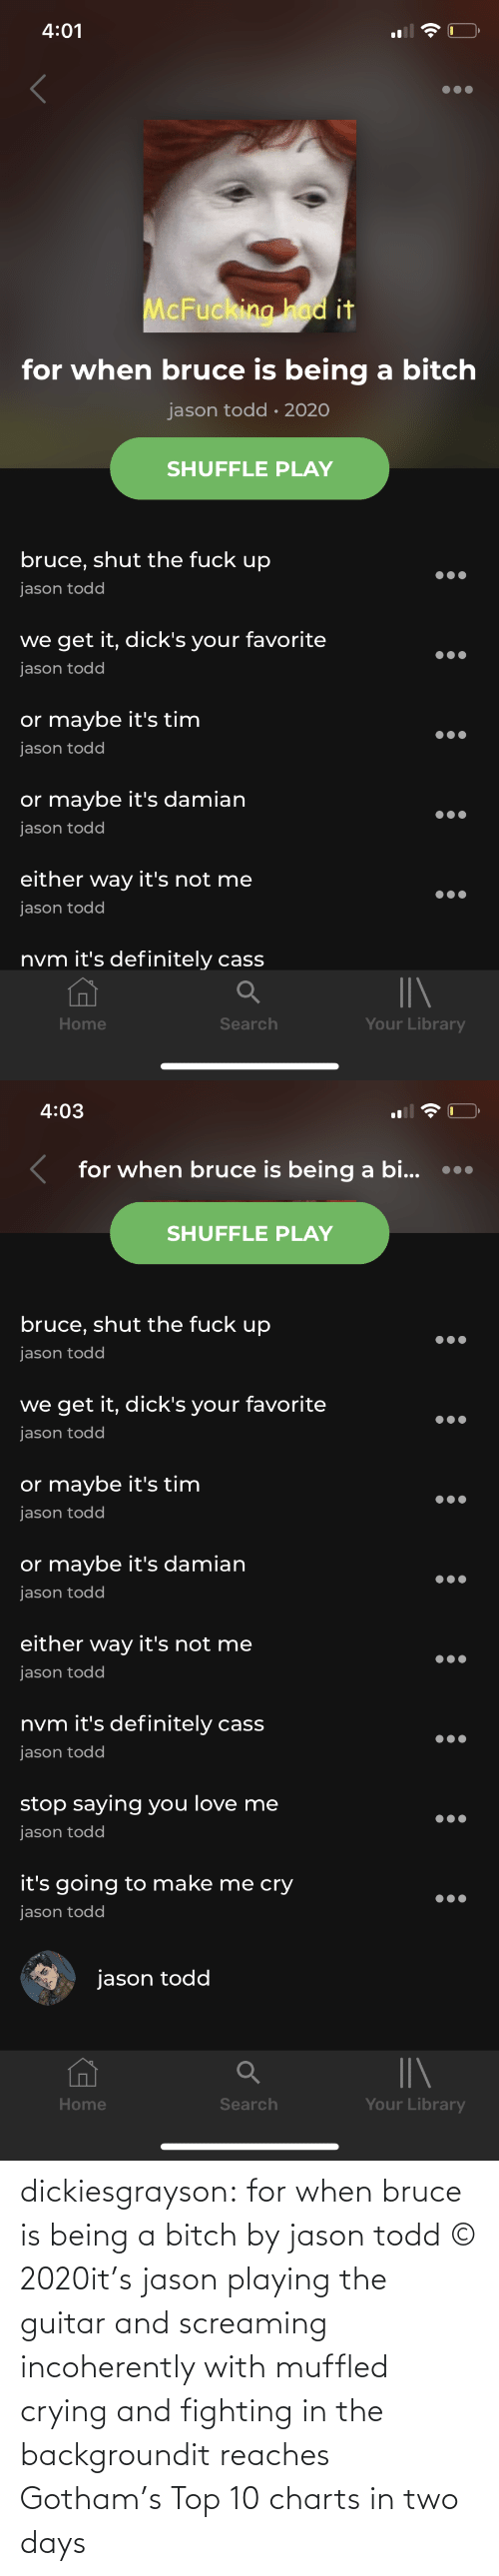 Crying: dickiesgrayson:  for when bruce is being a bitch by jason todd © 2020it's jason playing the guitar and screaming incoherently with muffled crying and fighting in the backgroundit reaches Gotham's Top 10 charts in two days